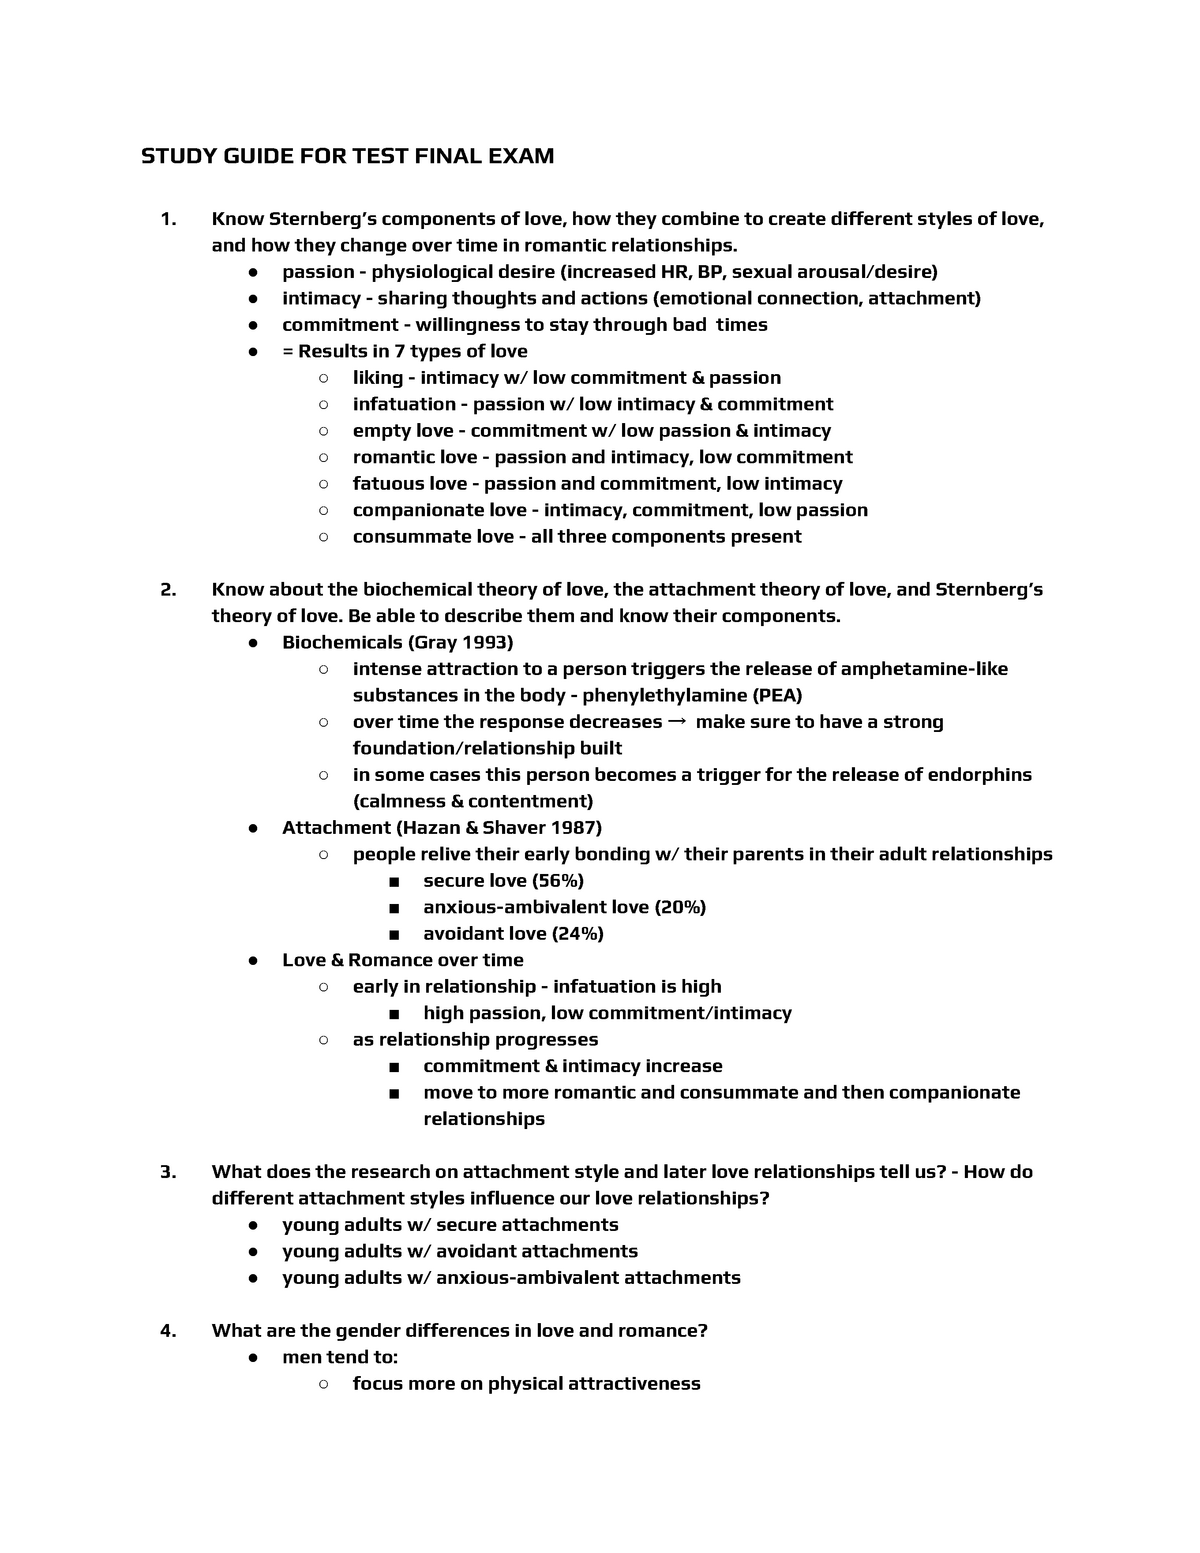 Psych 230 Exam 3 Study Guide - PSYCH 230: Developmental Psychology